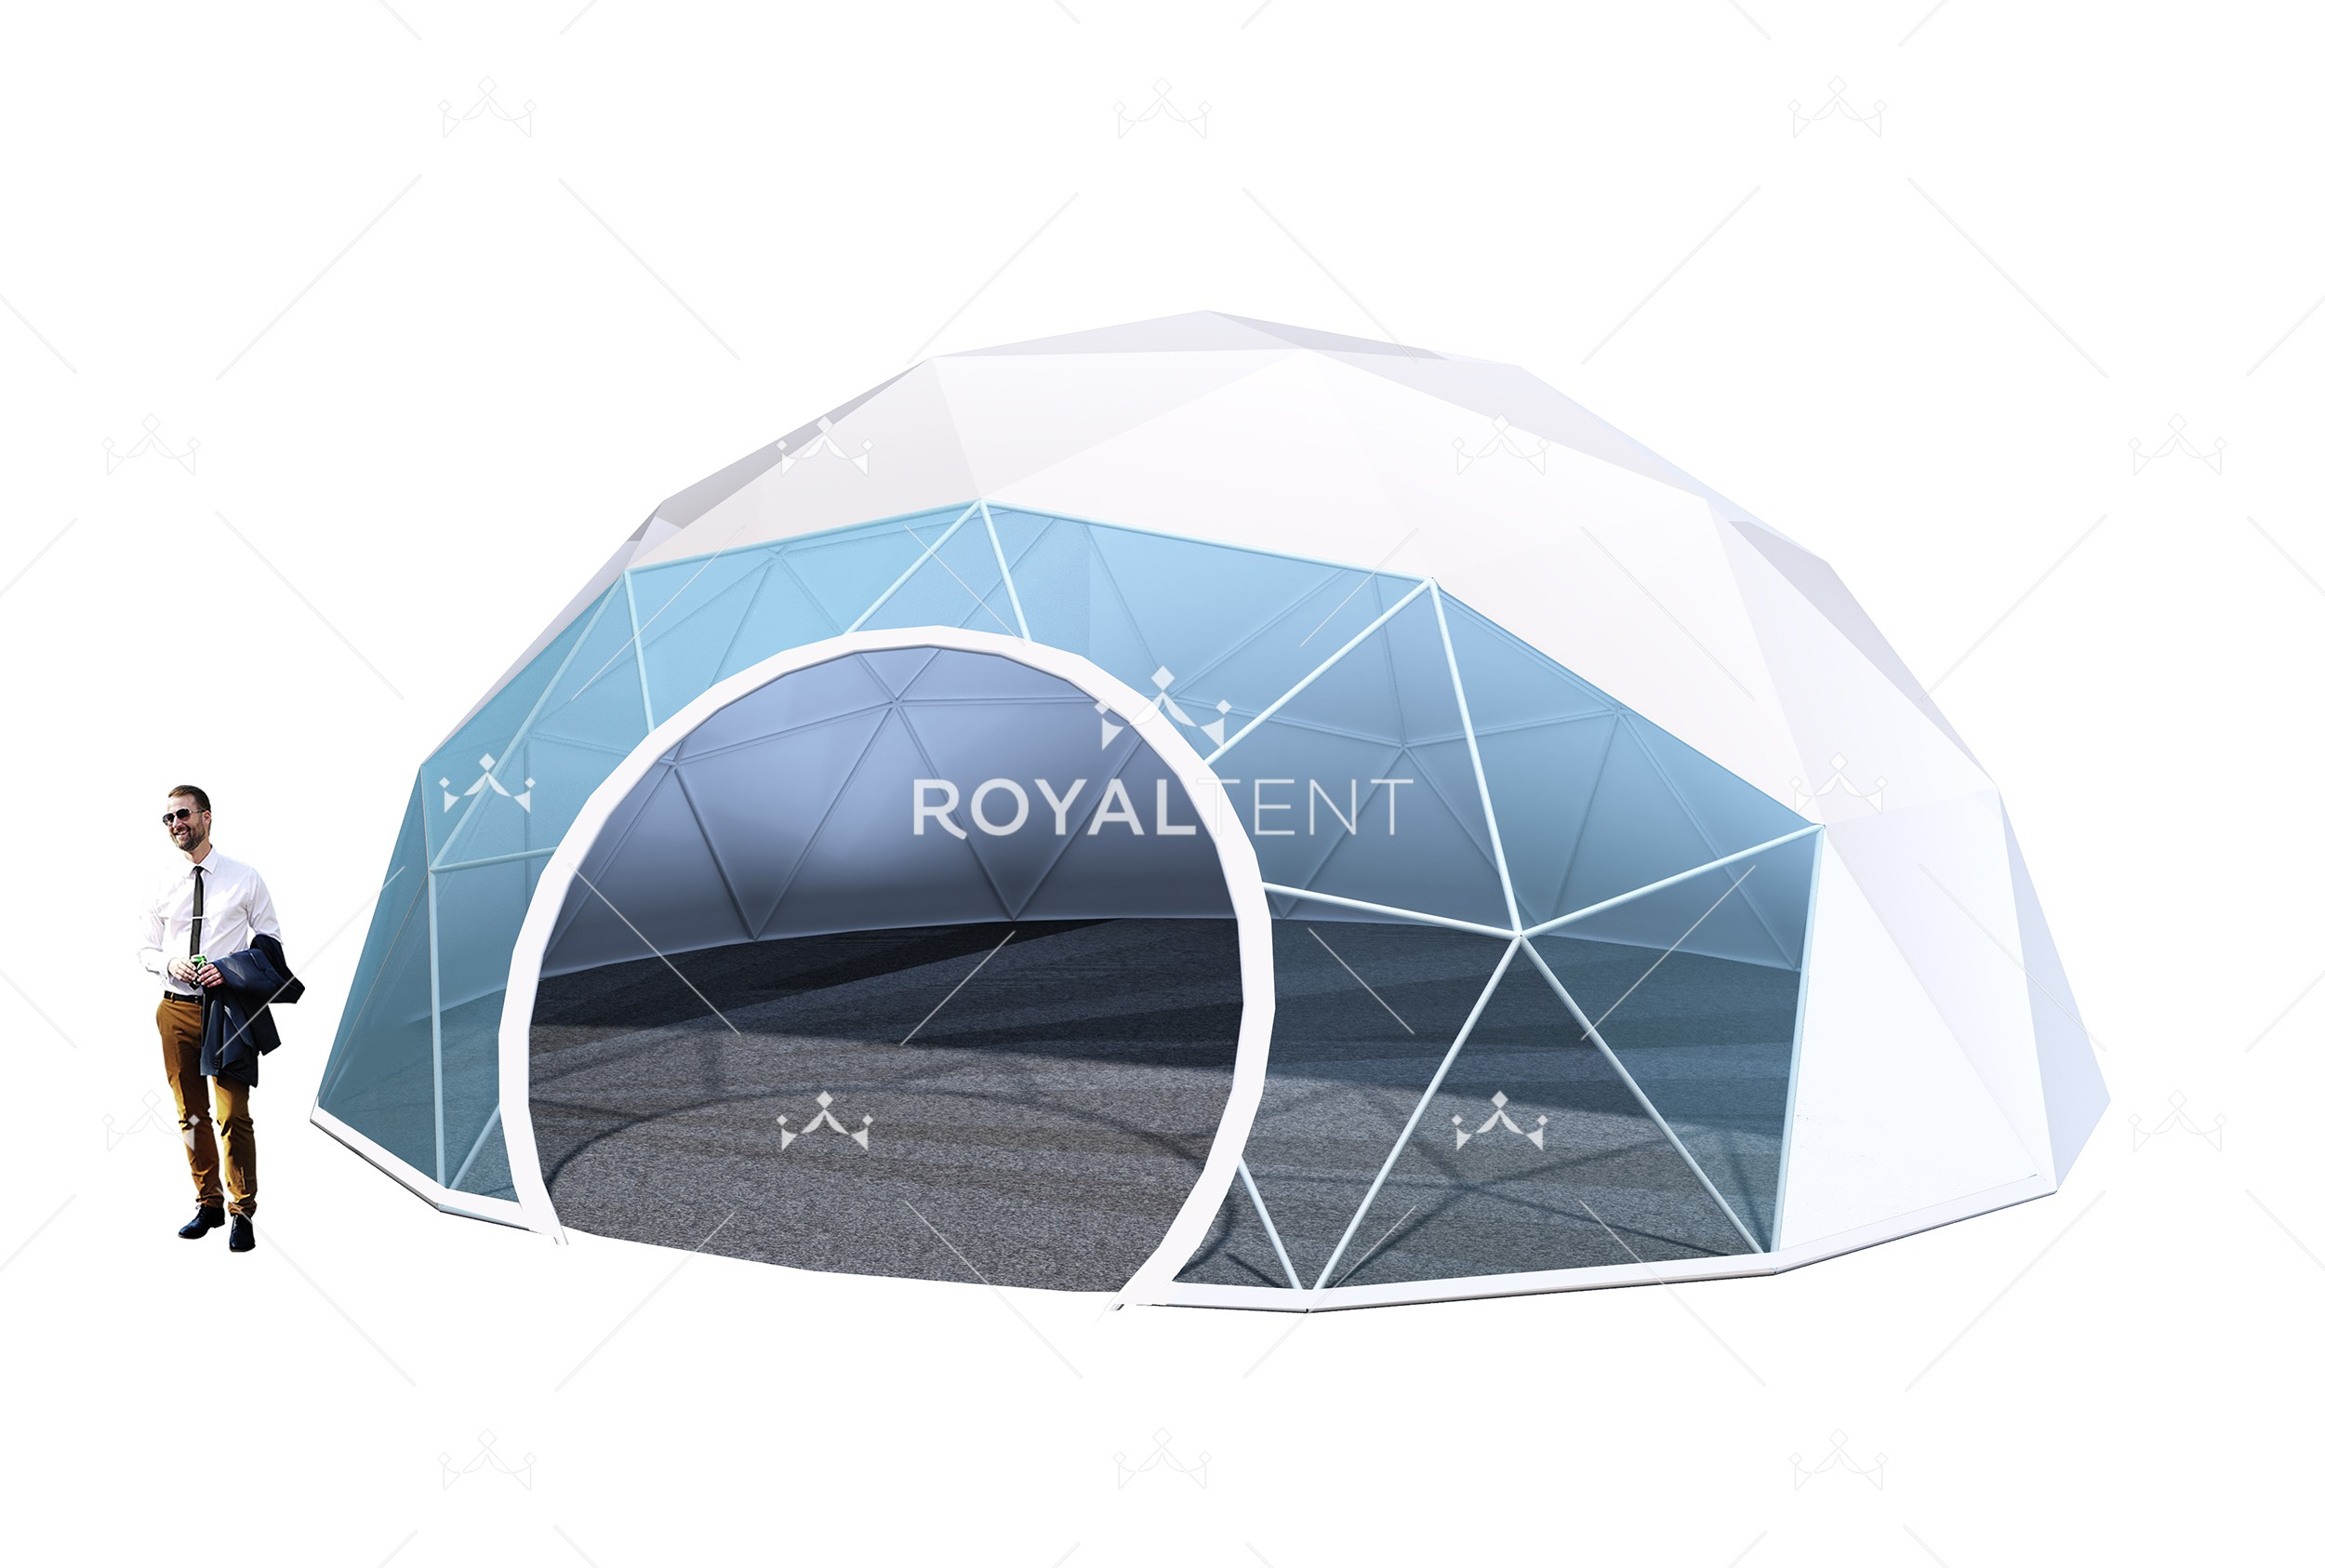 https://royaltent.me/houses_images/tent2_3_200111095214.jpg